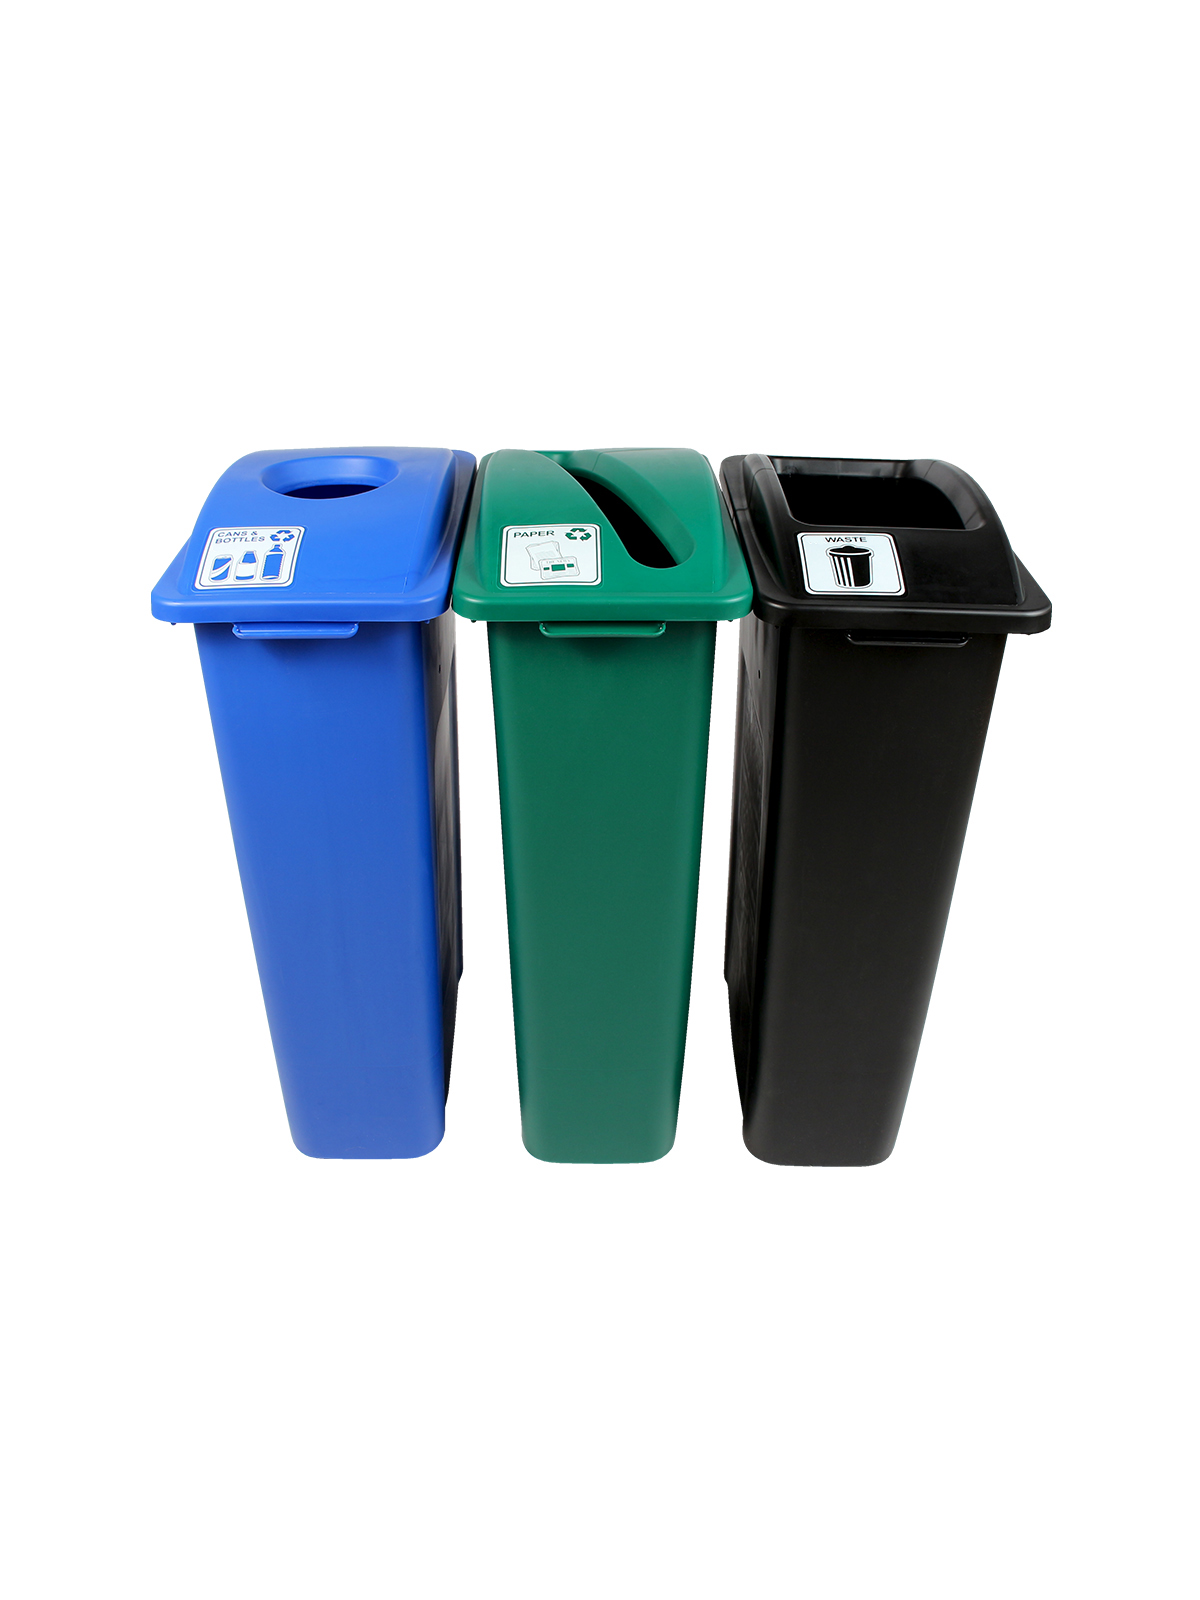 WASTE WATCHER - Triple - Cans & Bottles-Paper-Waste - Circle-Slot-Full - Blue-Green-Black